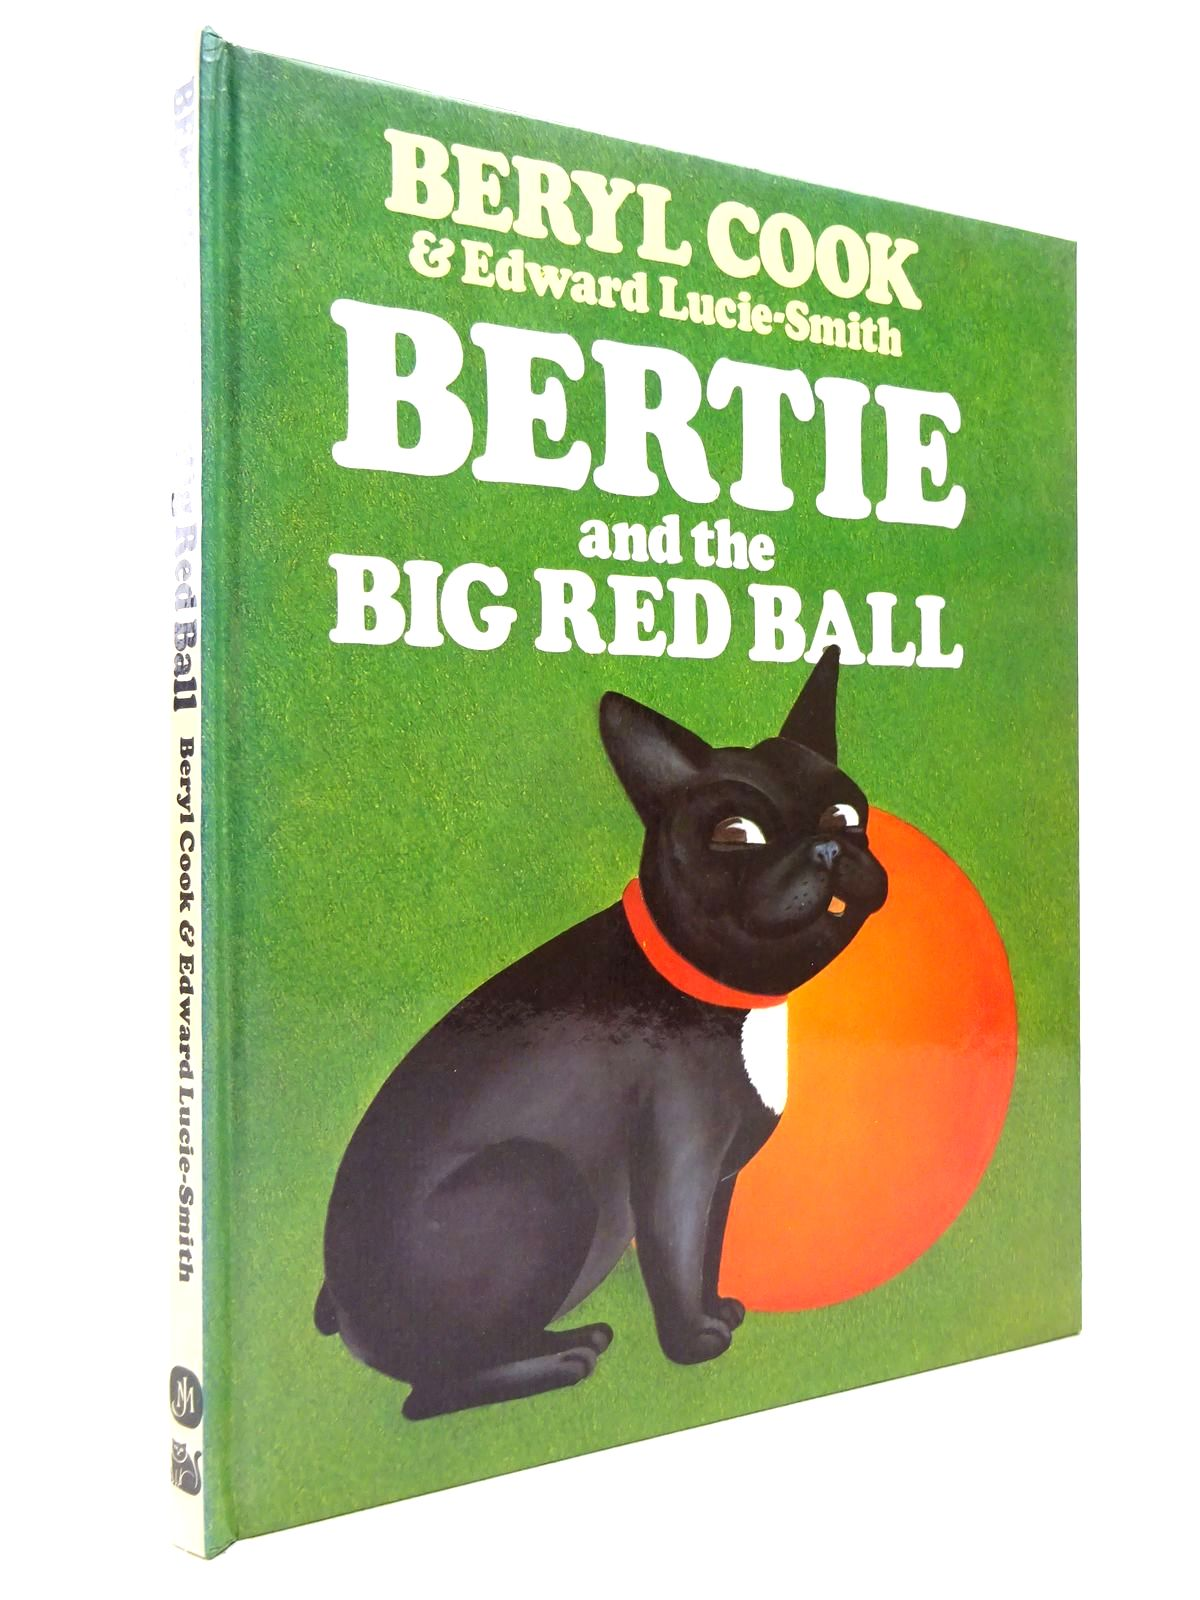 Photo of BERTIE AND THE BIG RED BALL written by Lucie-Smith, Edward illustrated by Cook, Beryl published by John Murray, Gallery Five (STOCK CODE: 1815530)  for sale by Stella & Rose's Books